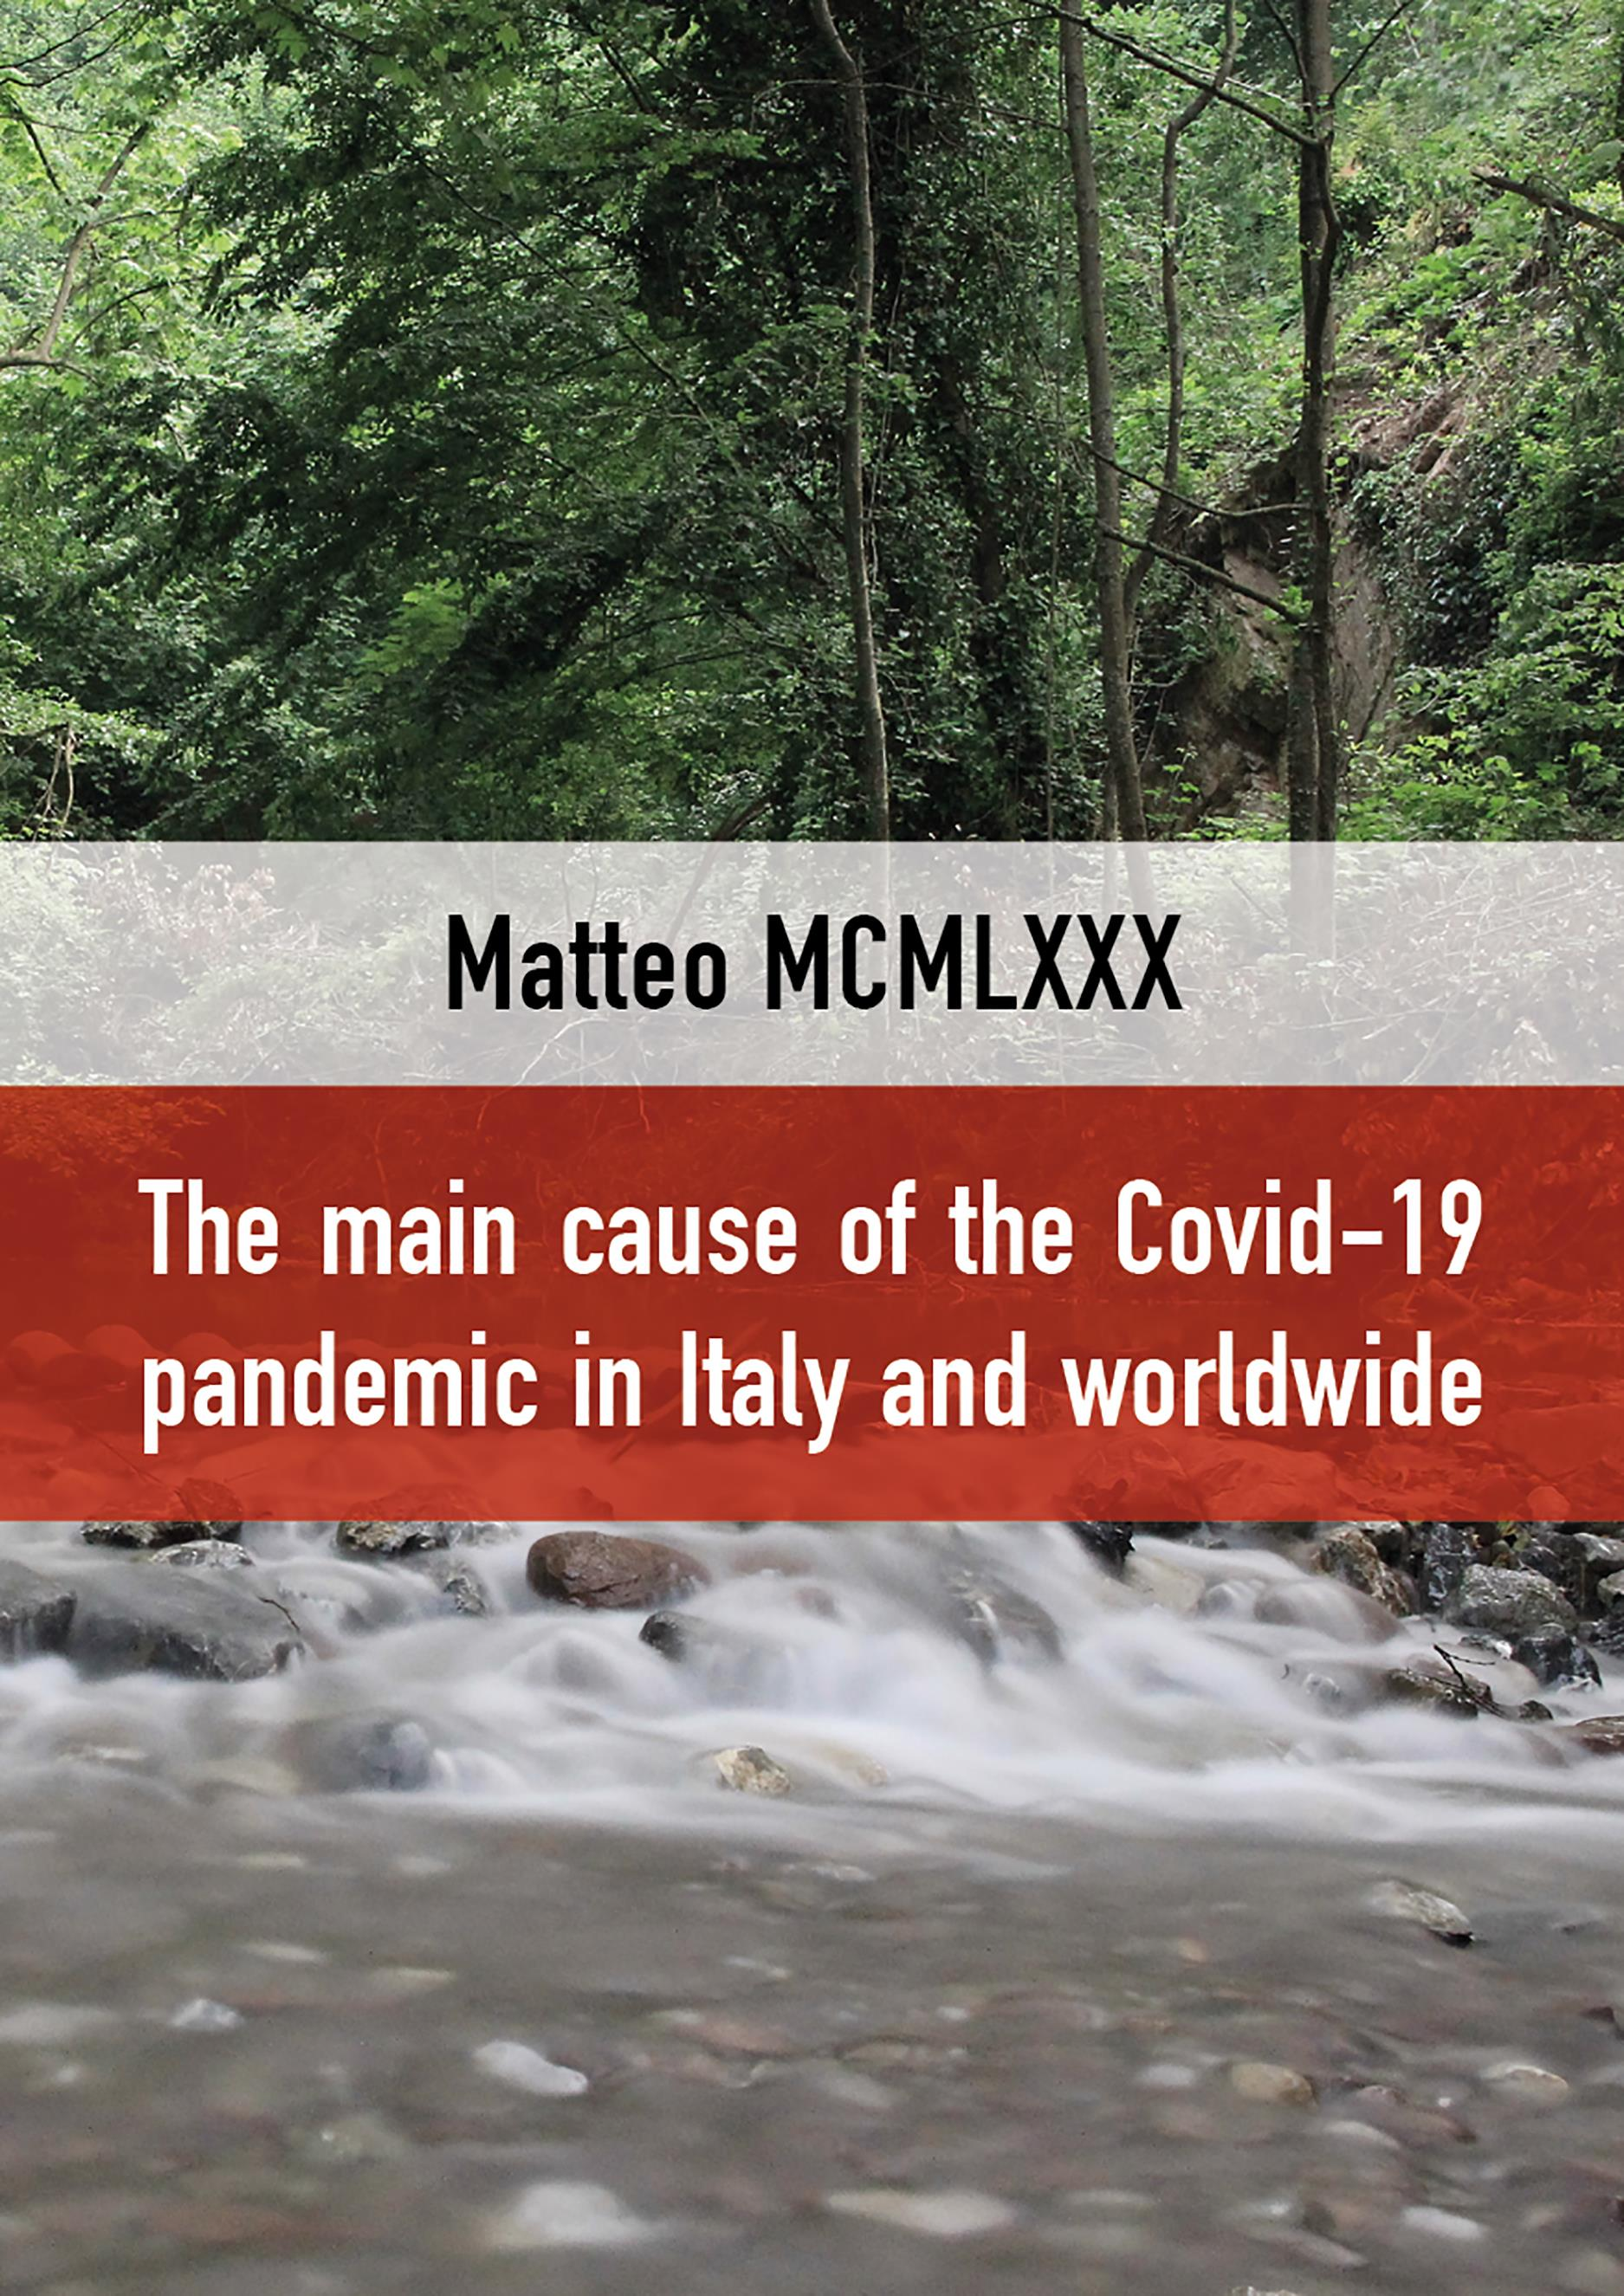 The Main cause of the Covid-19 pandemic in Italy and worldwide